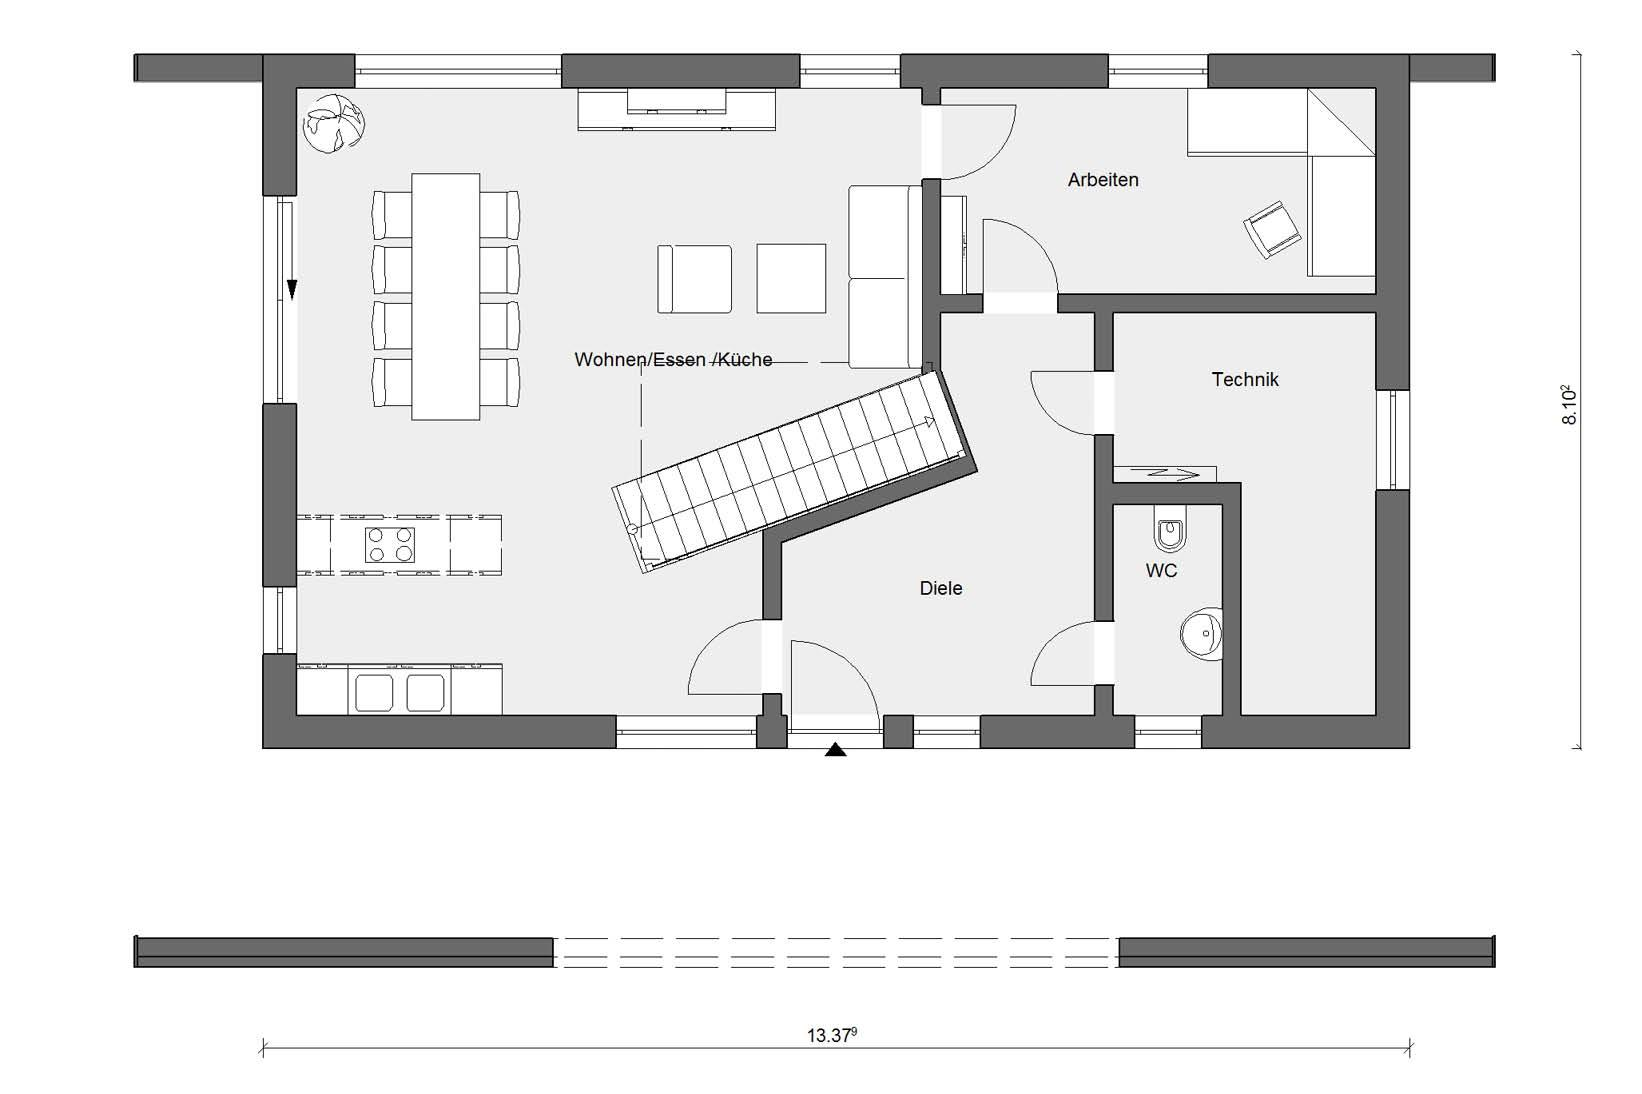 Ground floor plan E 15-170.1 prefabricated house with energy plus